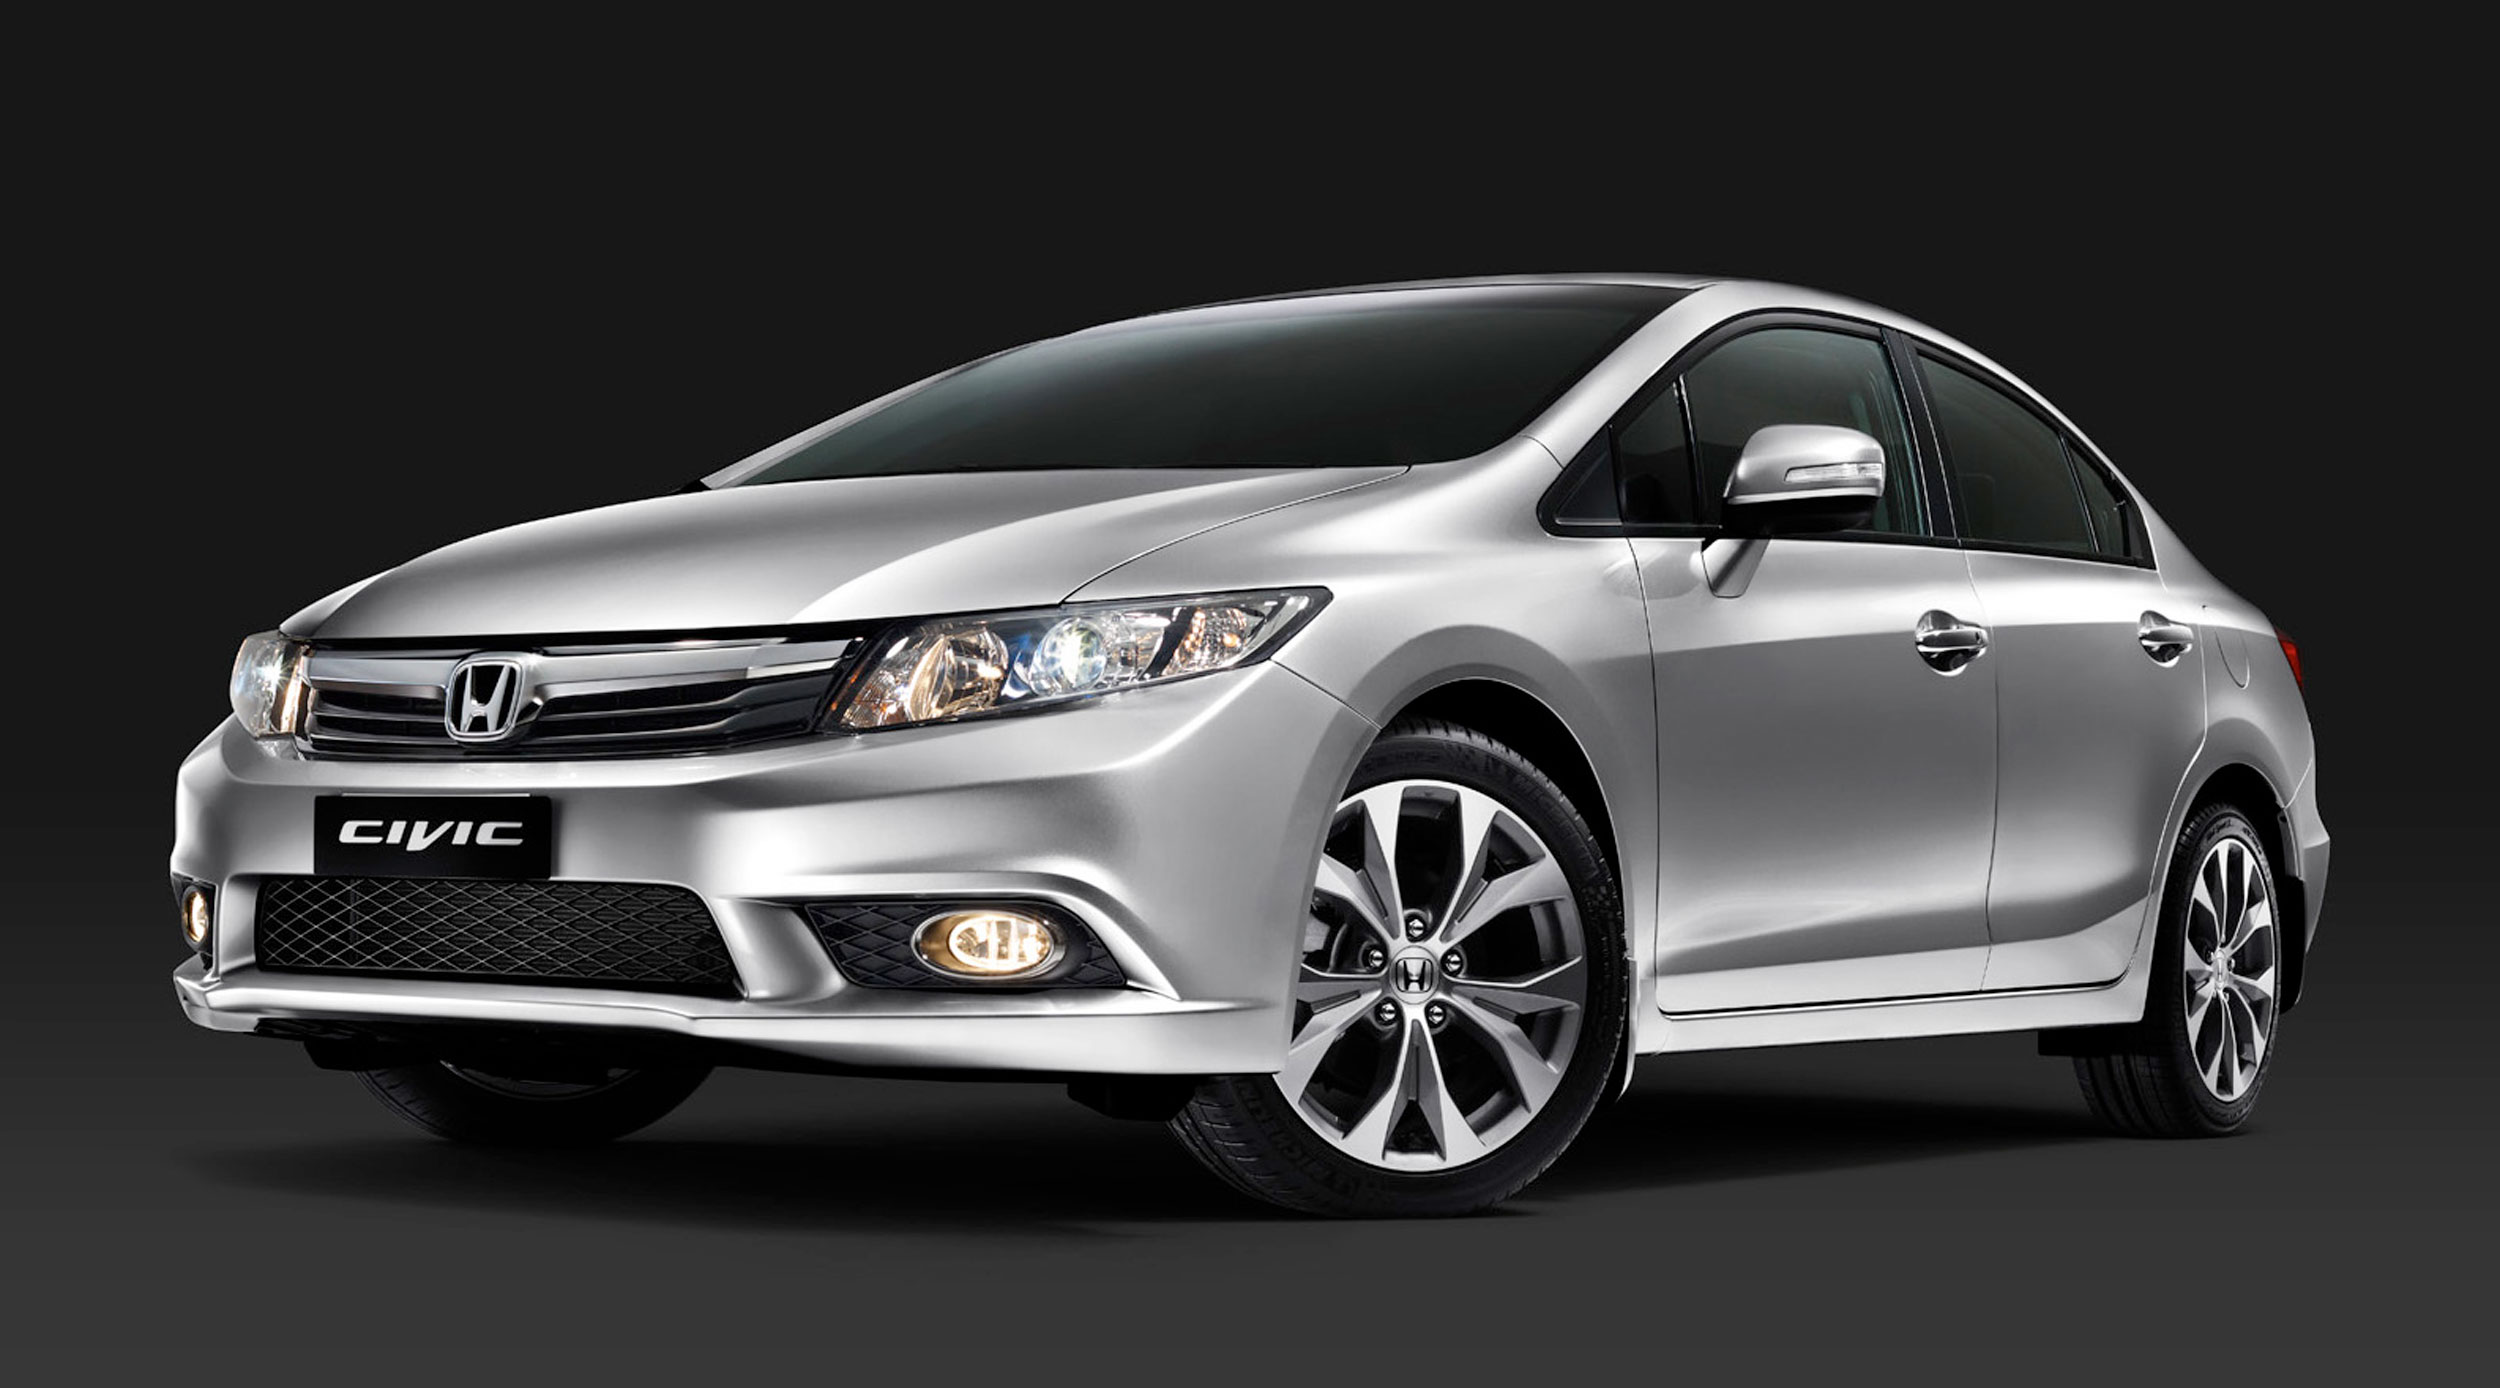 Honda Civic 2016 Exterior Front Side View